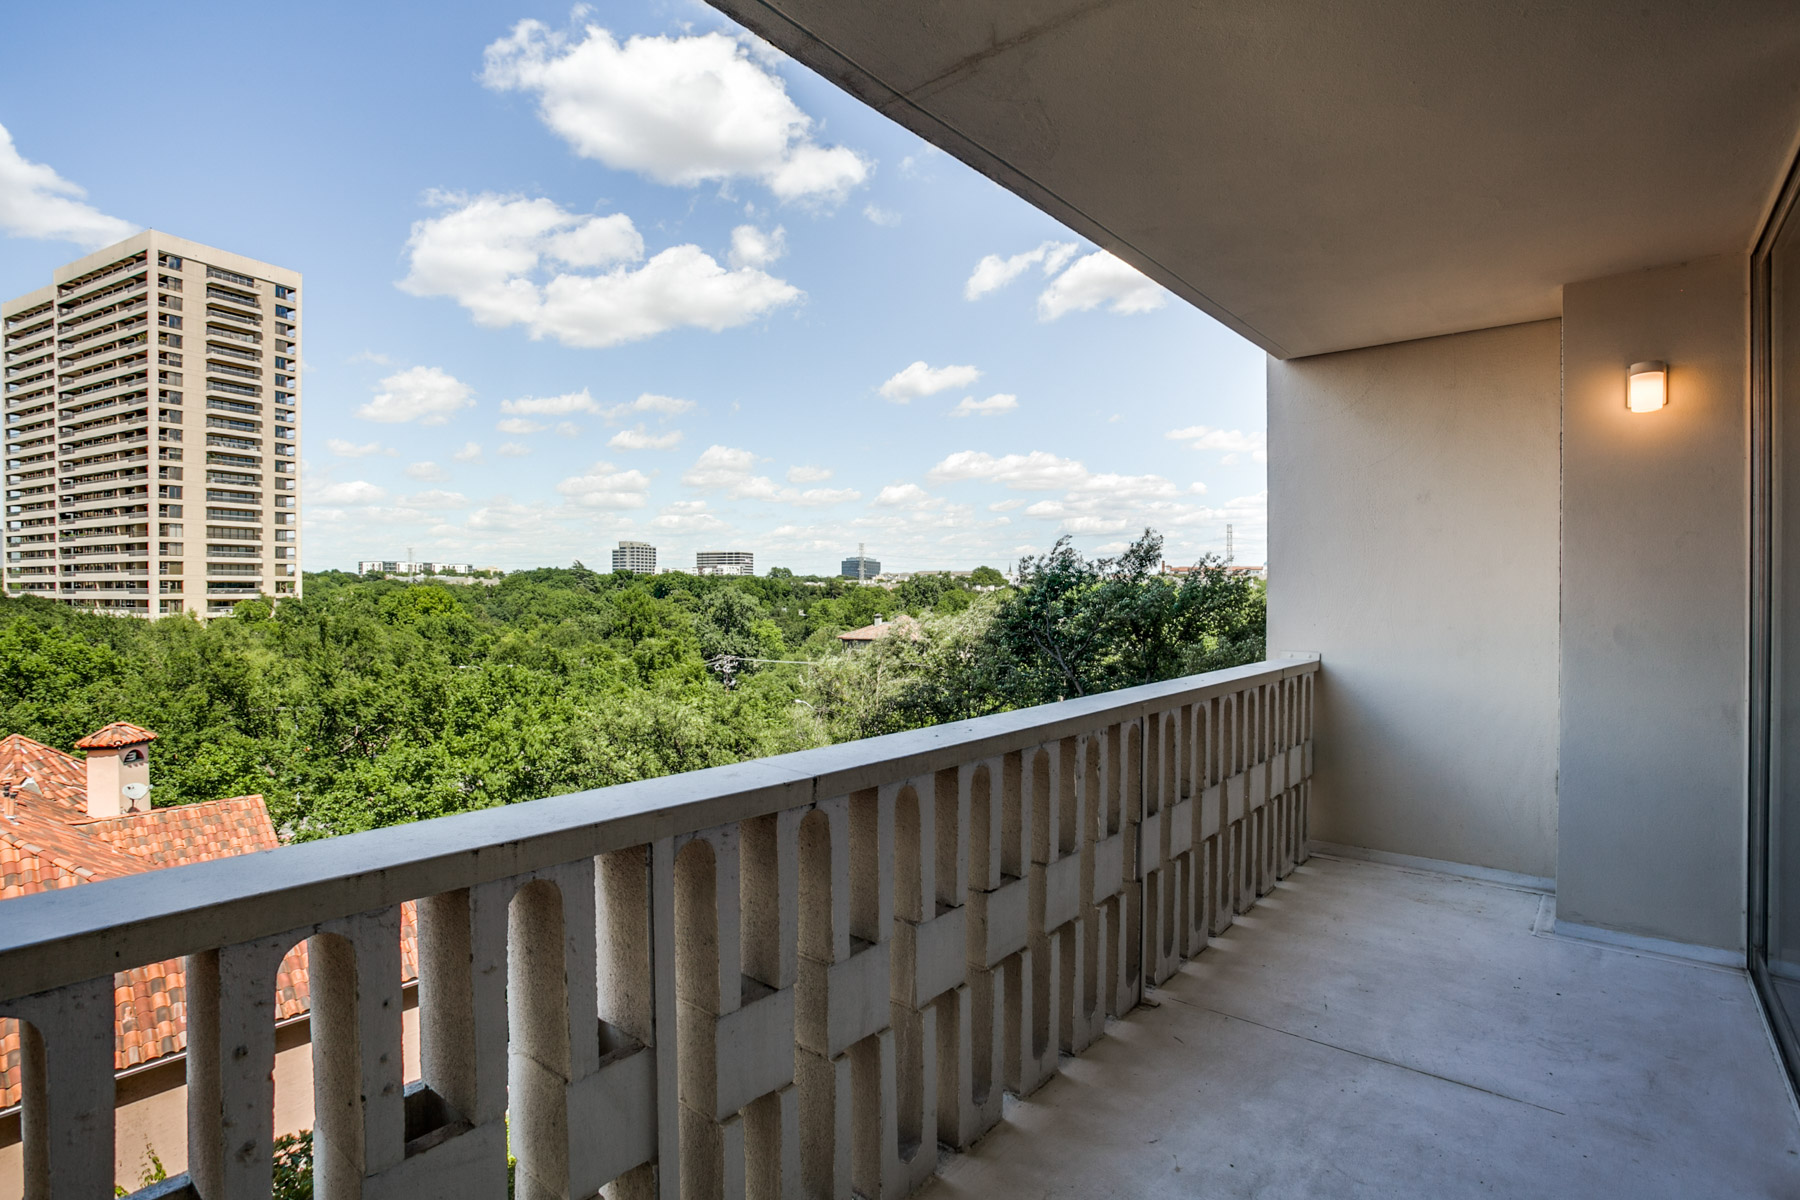 Single Family Home for Sale at Fabulous 1 bedroom high-rise condo on Turtle Creek 3701 Turtle Creek Blvd 6D Dallas, Texas, 75219 United States